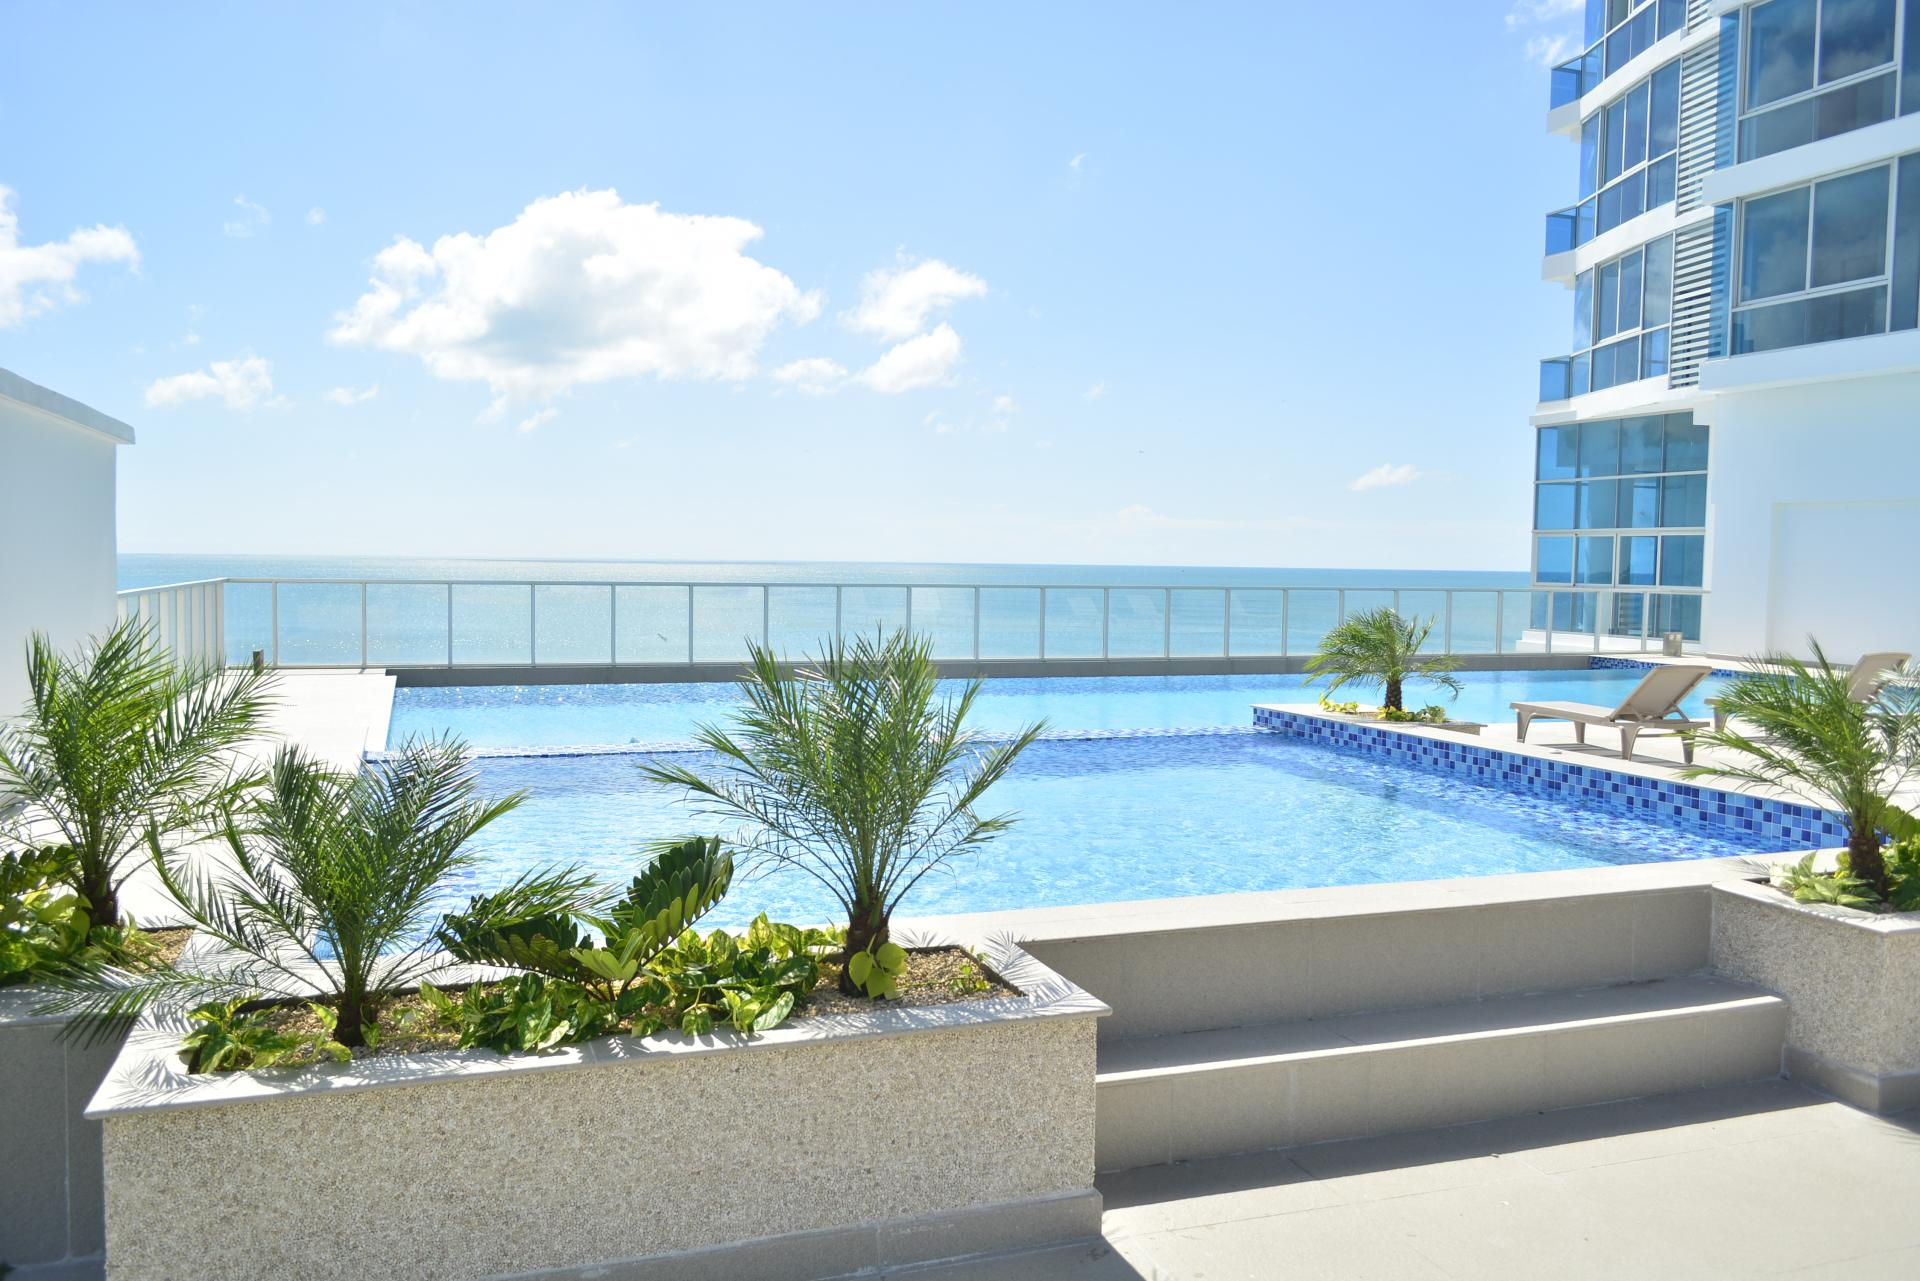 Pool of apartment building in a beach in Panama